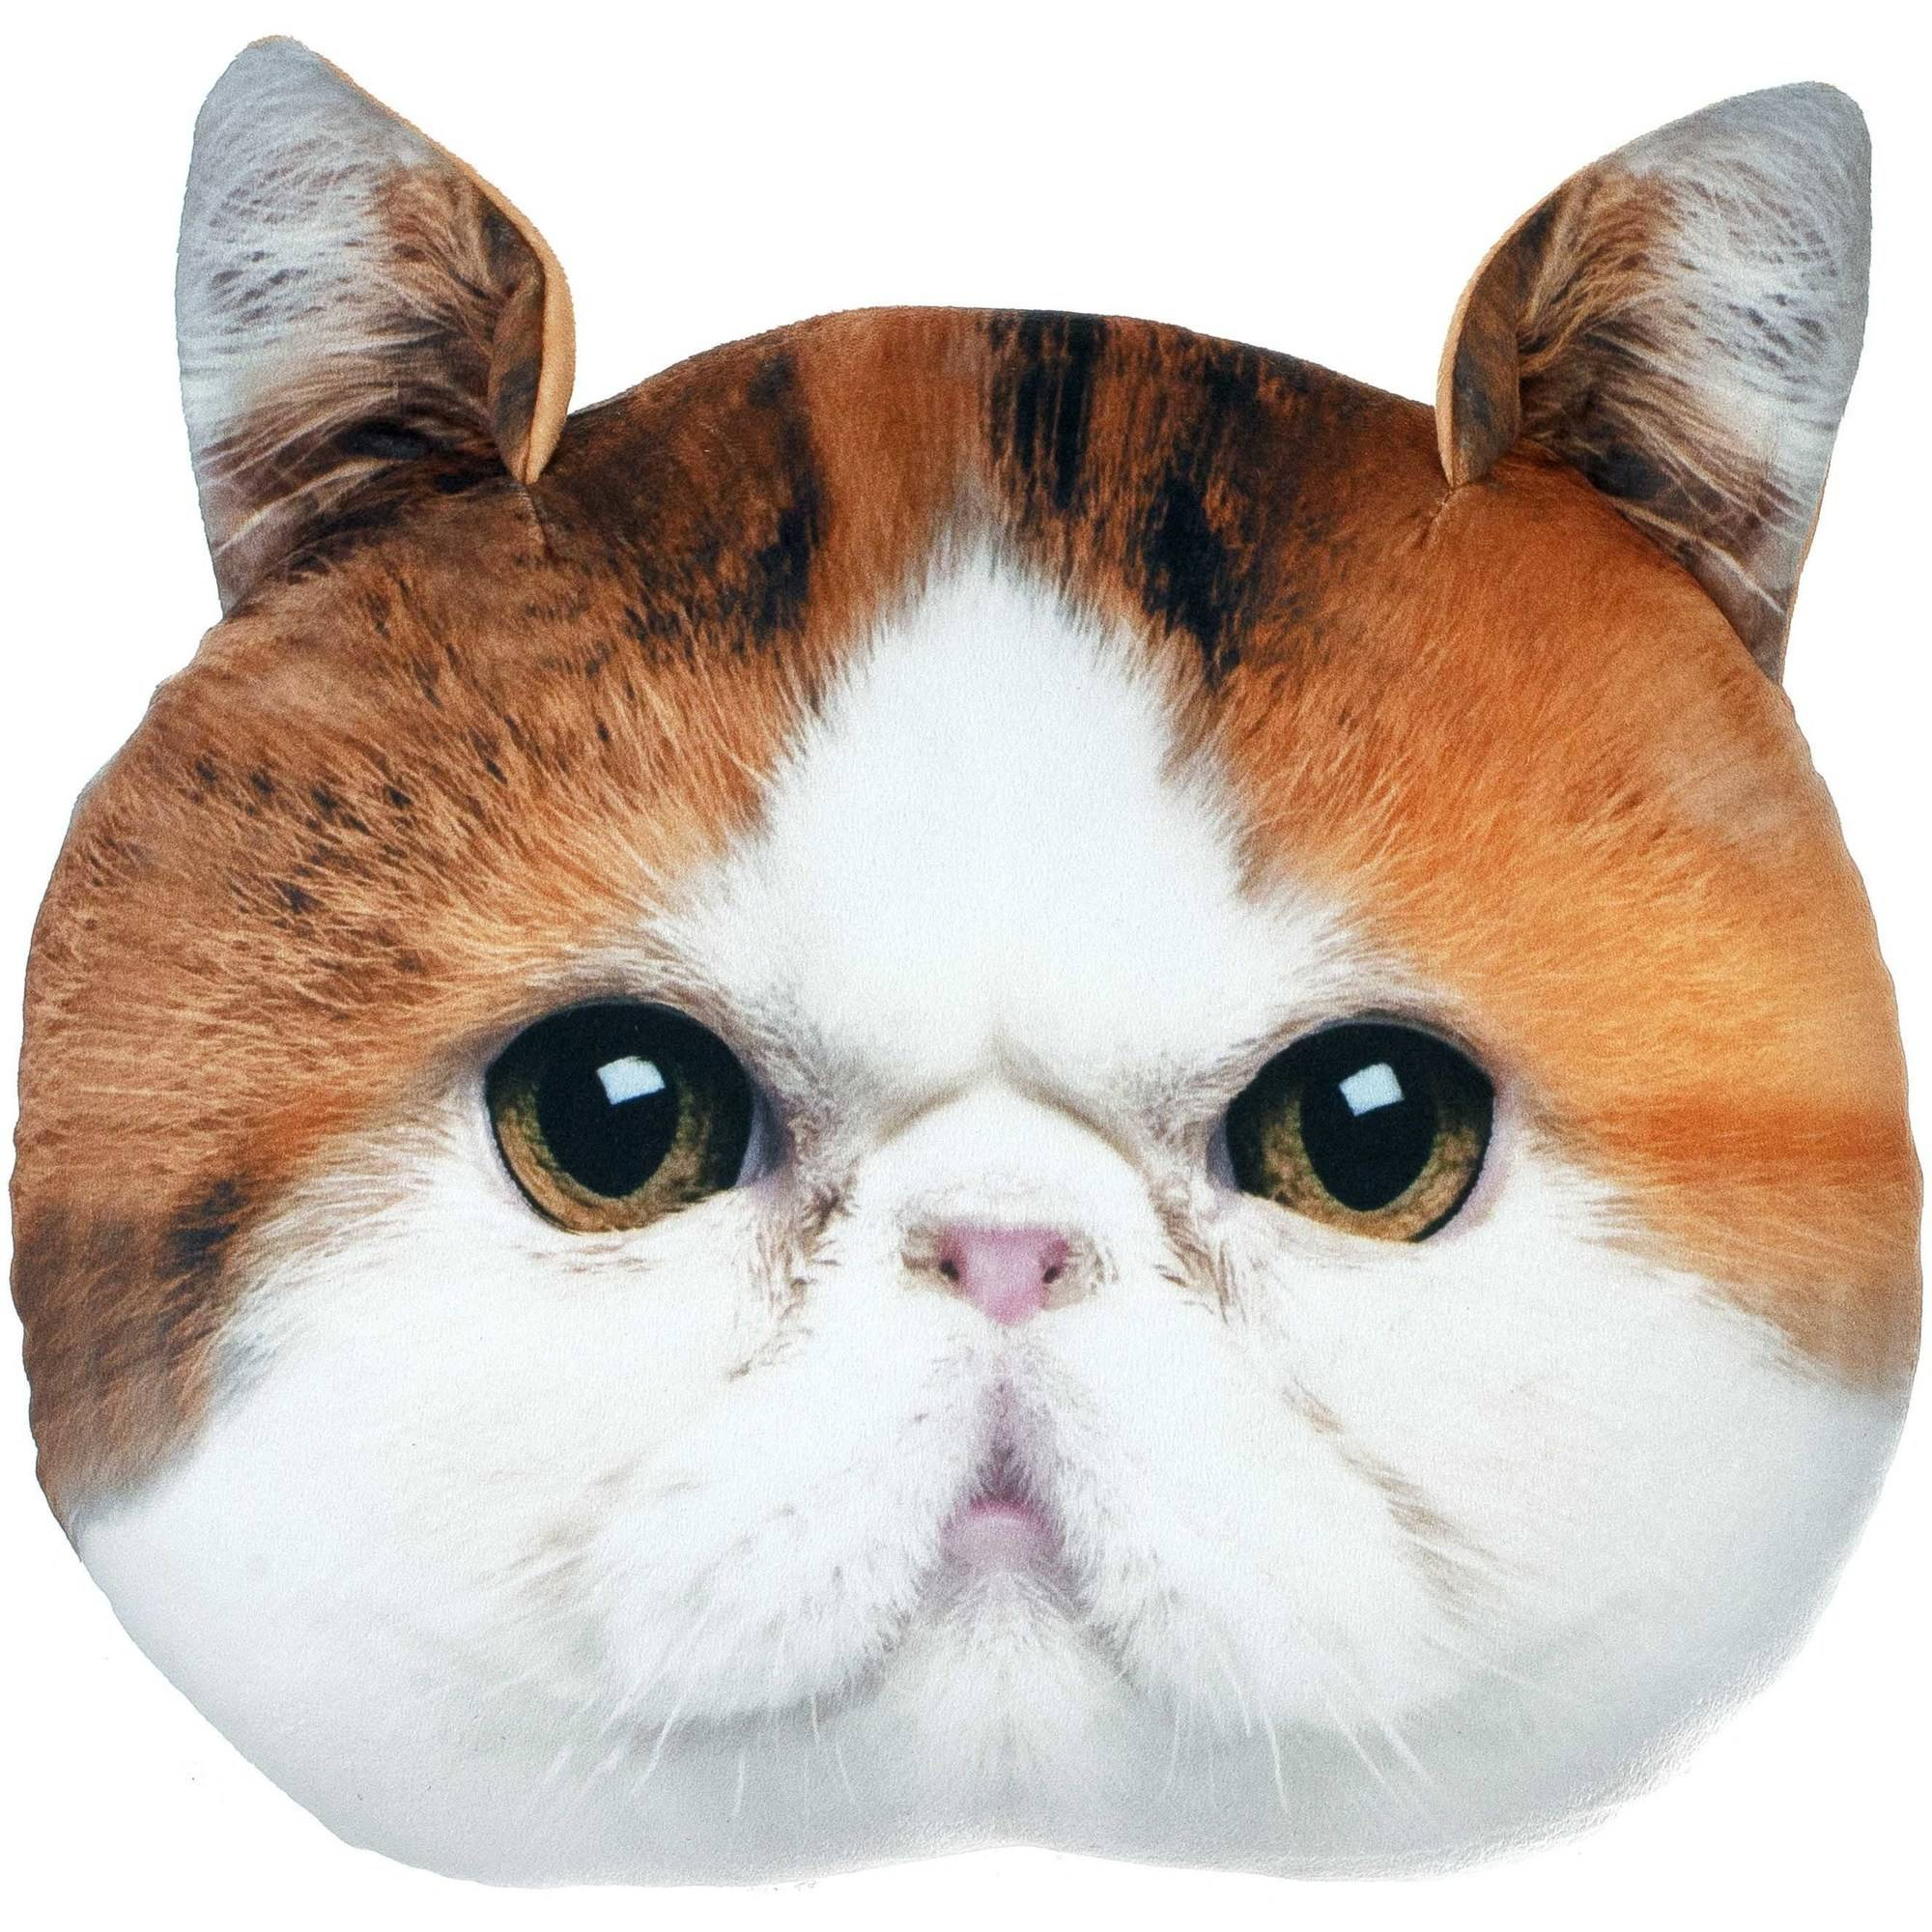 Snoopy Cat Plush Photo Real Pillow, 1 Each